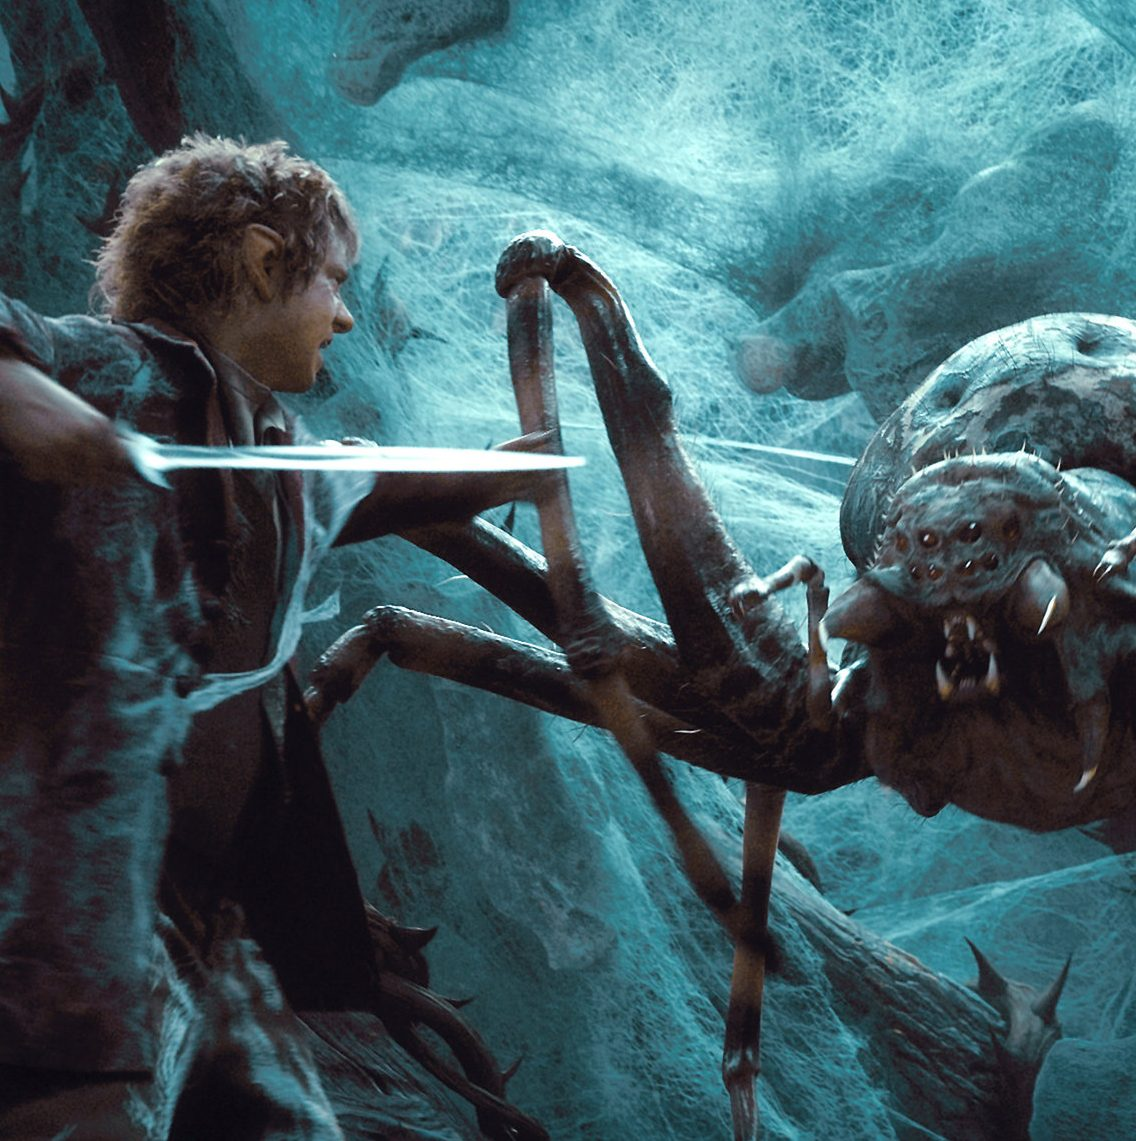 22SPIDERS1 SPAN superJumbo e1580816111564 20 CGI Moments So Bad They Ruined The Entire Film